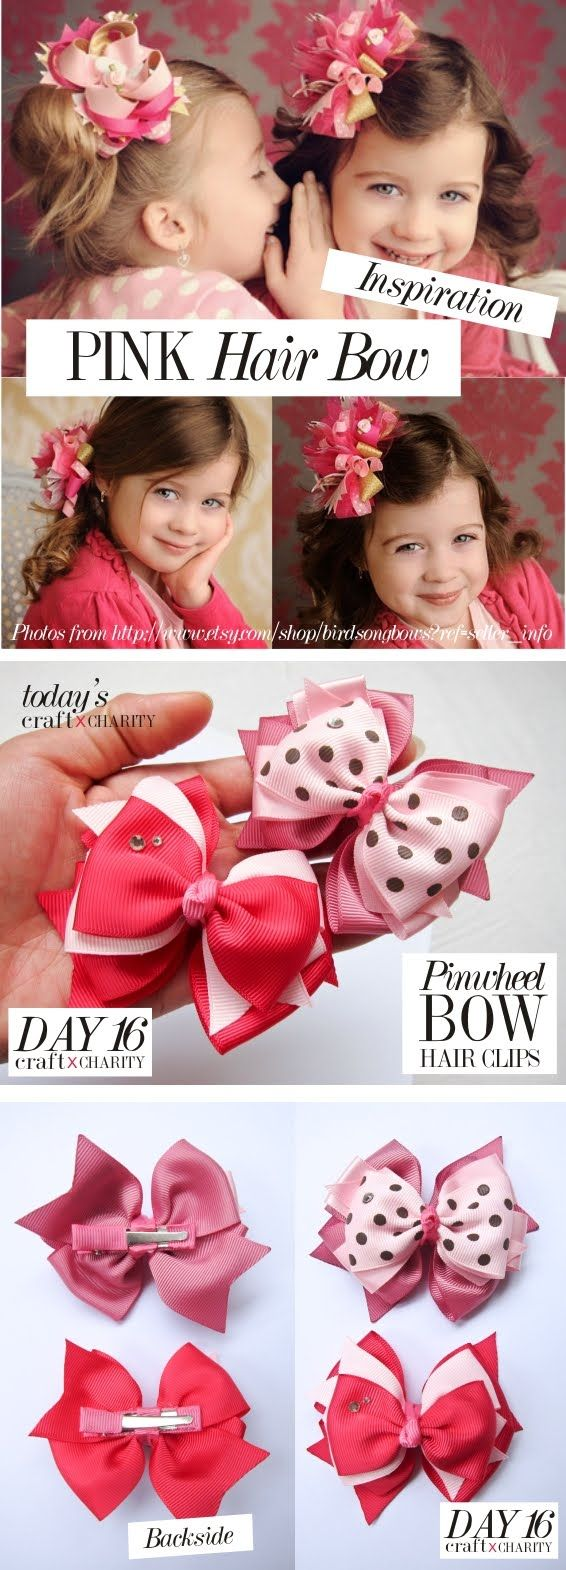 Day 16 - PINK pinwheel bow hair clips set ( 2 in 1 )